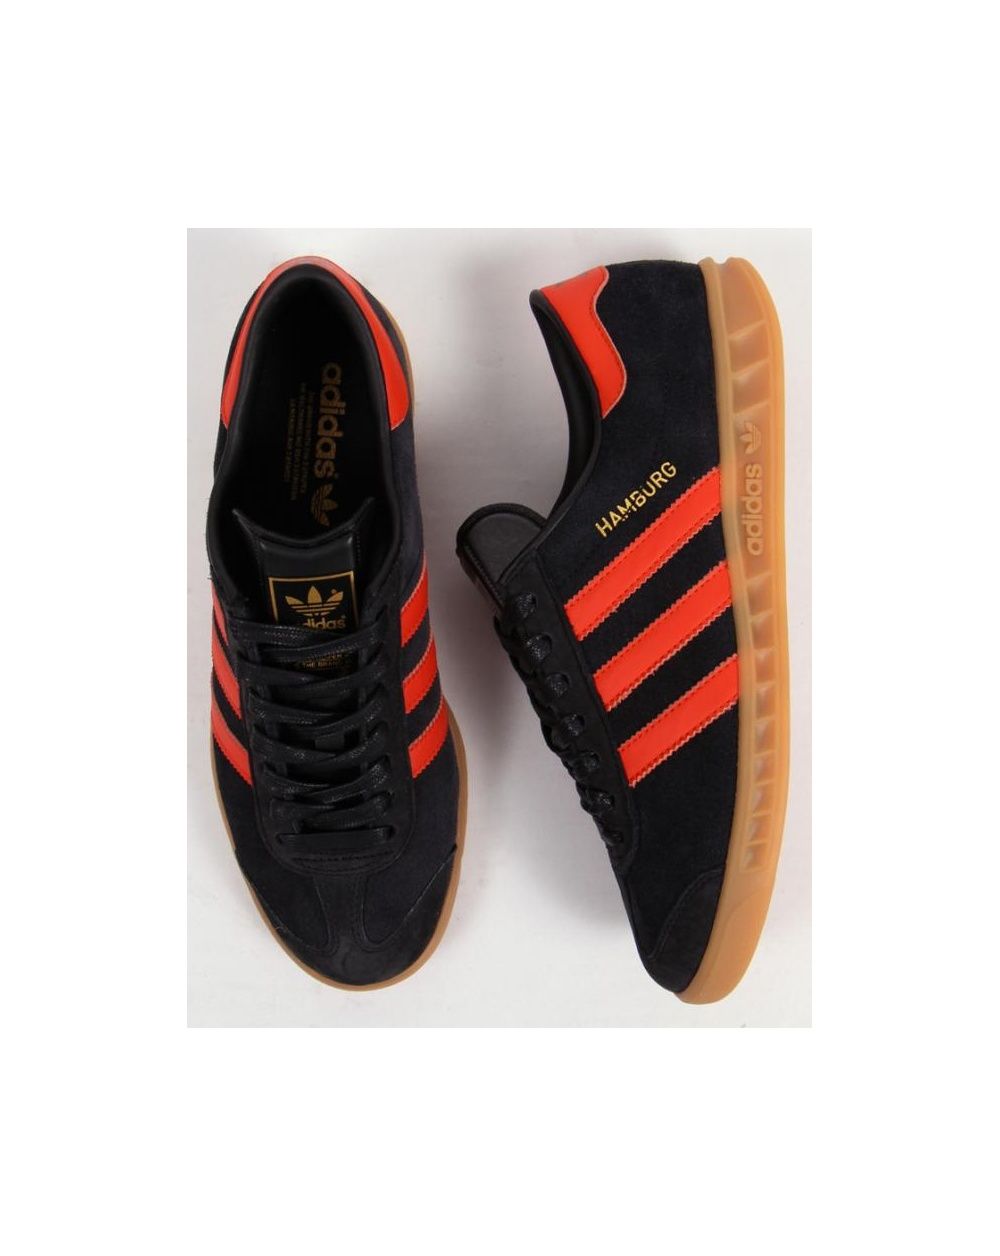 adidas hamburg shoes black and orange